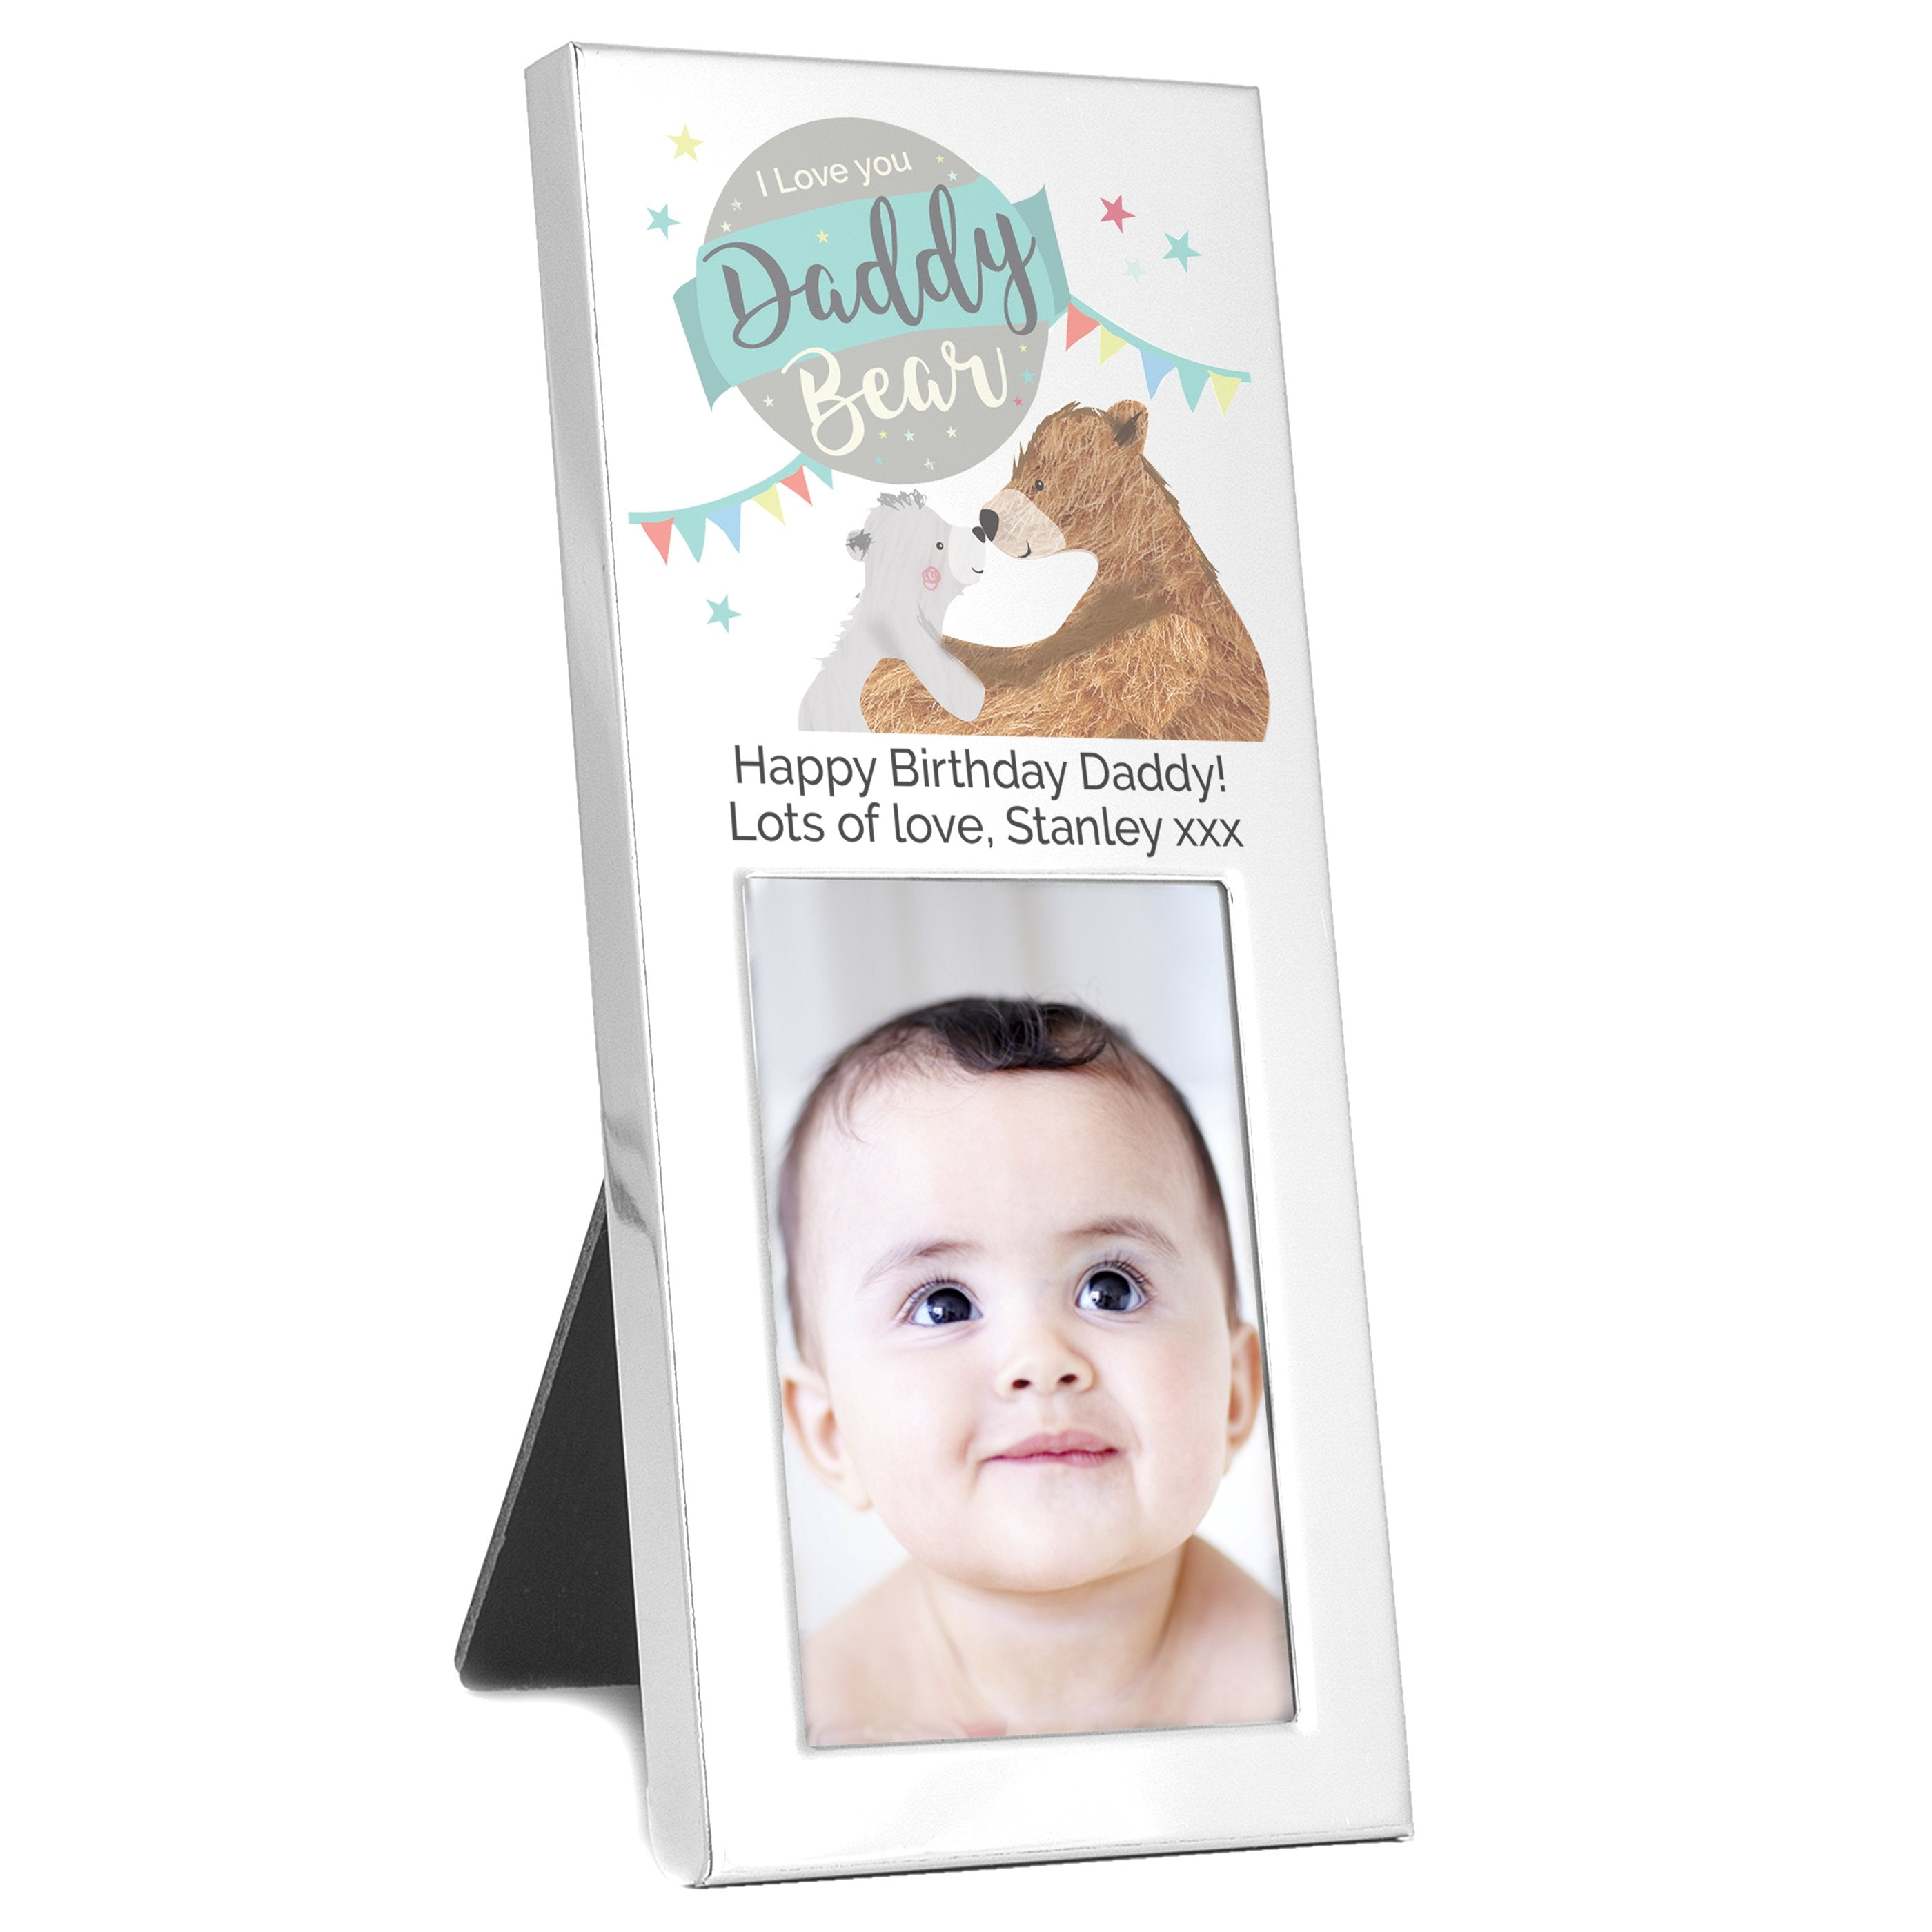 Personalised Daddy Bear 3x2 Photo Frame - Shop Personalised Gifts